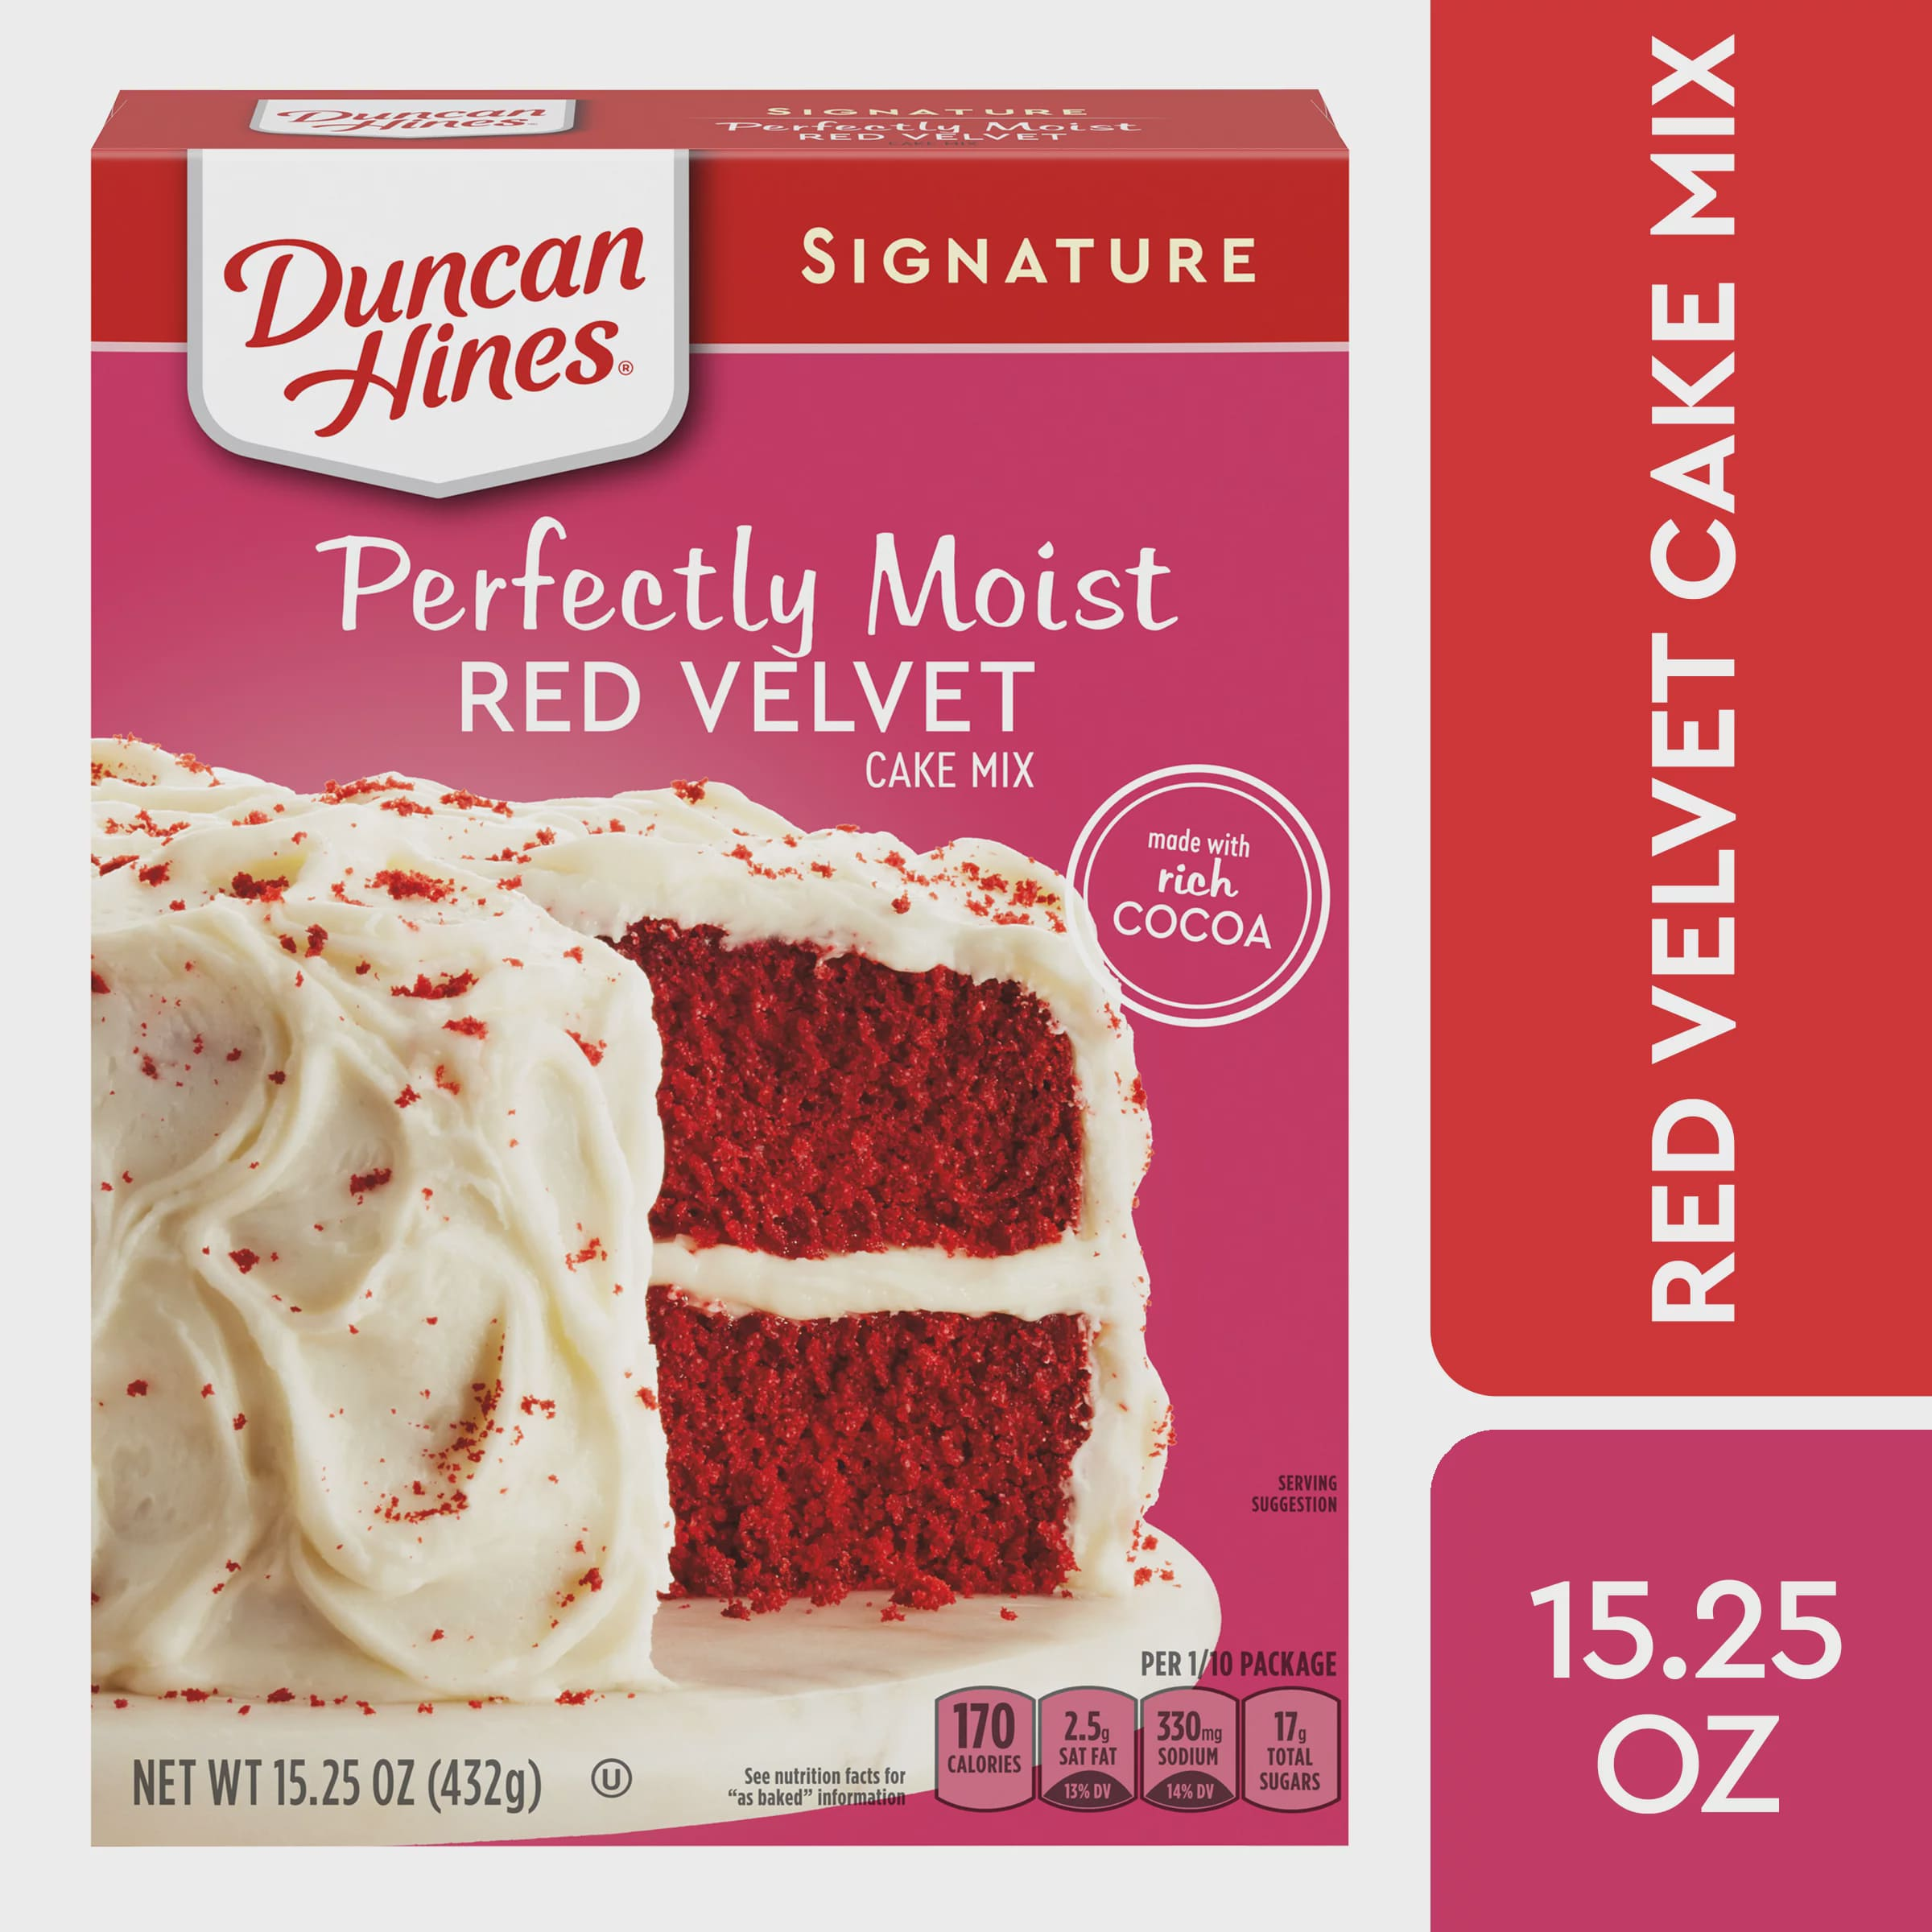 Duncan Hines Signature Perfectly Moist Red Velvet Cake Mix, 15.25 OZ